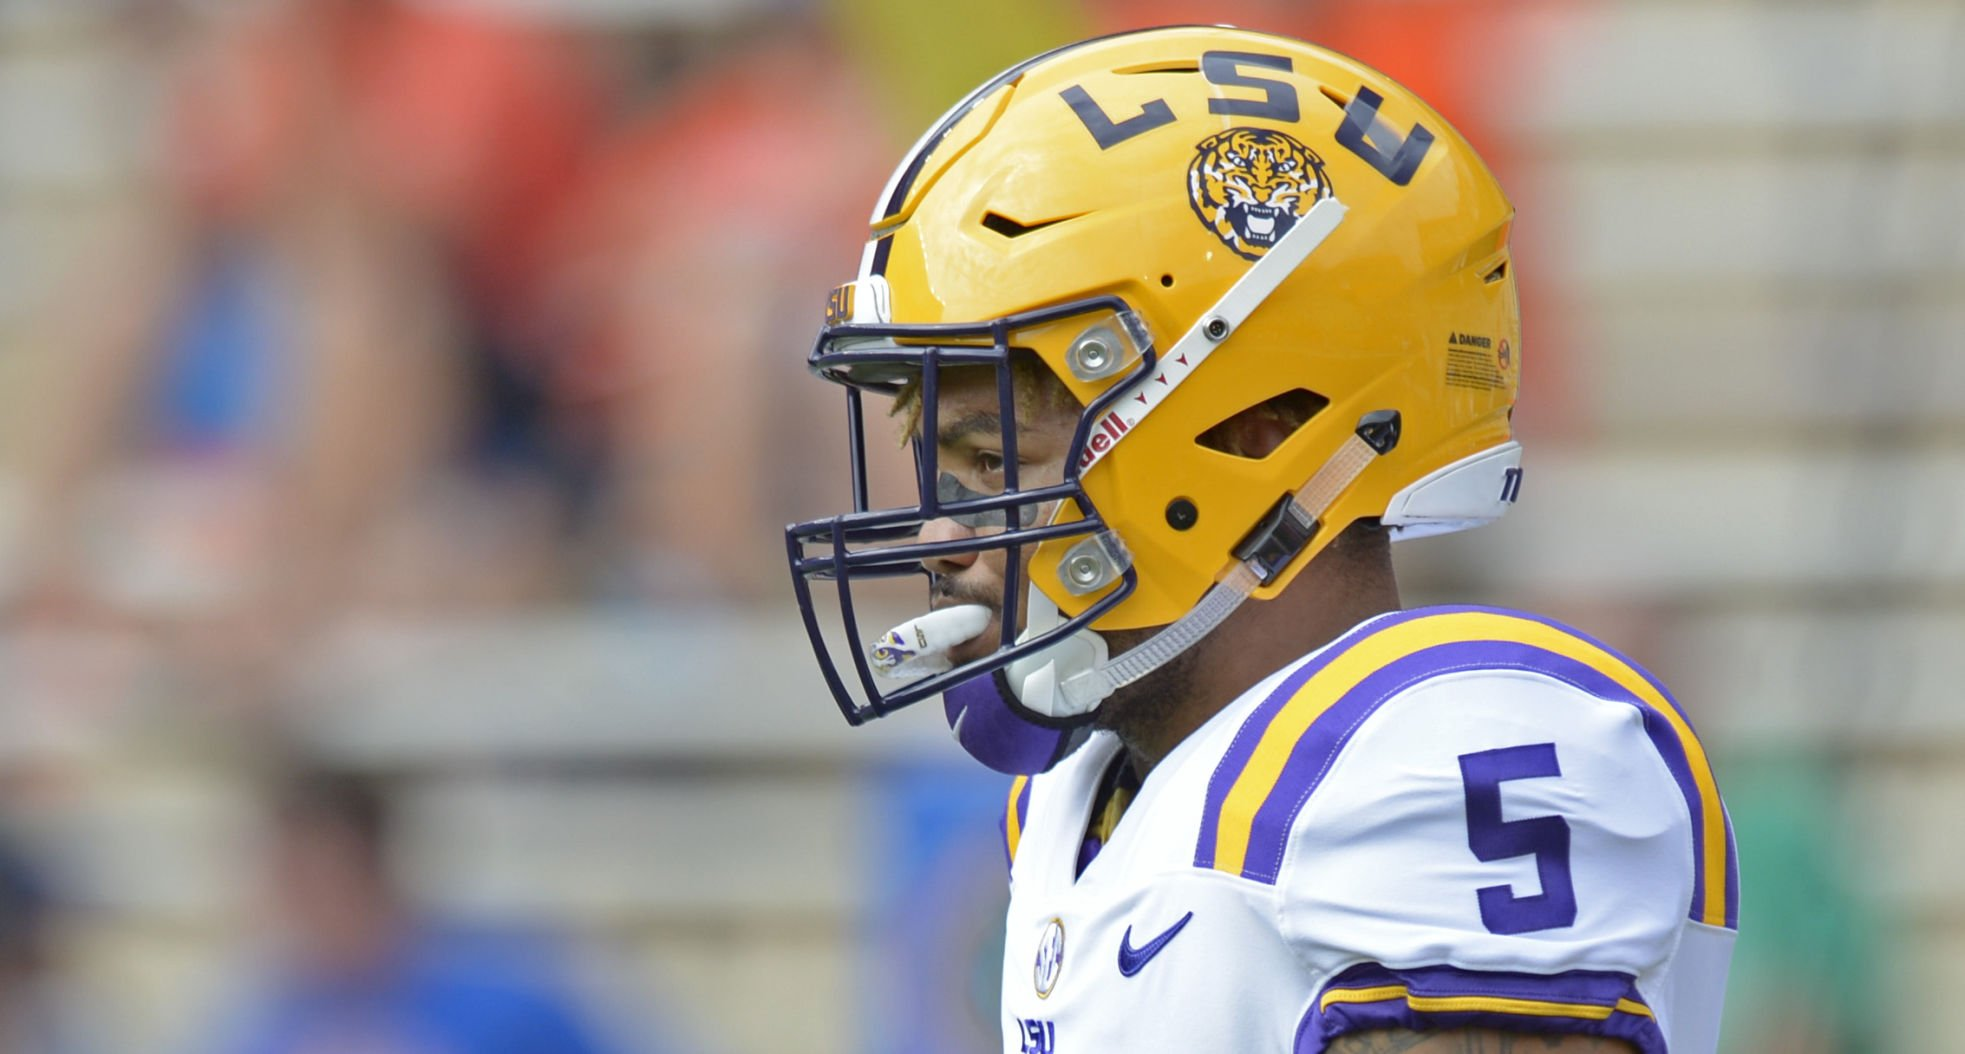 LSU RB Derrius Guice Trolls Florida Coach Jim McElwain on Twitter